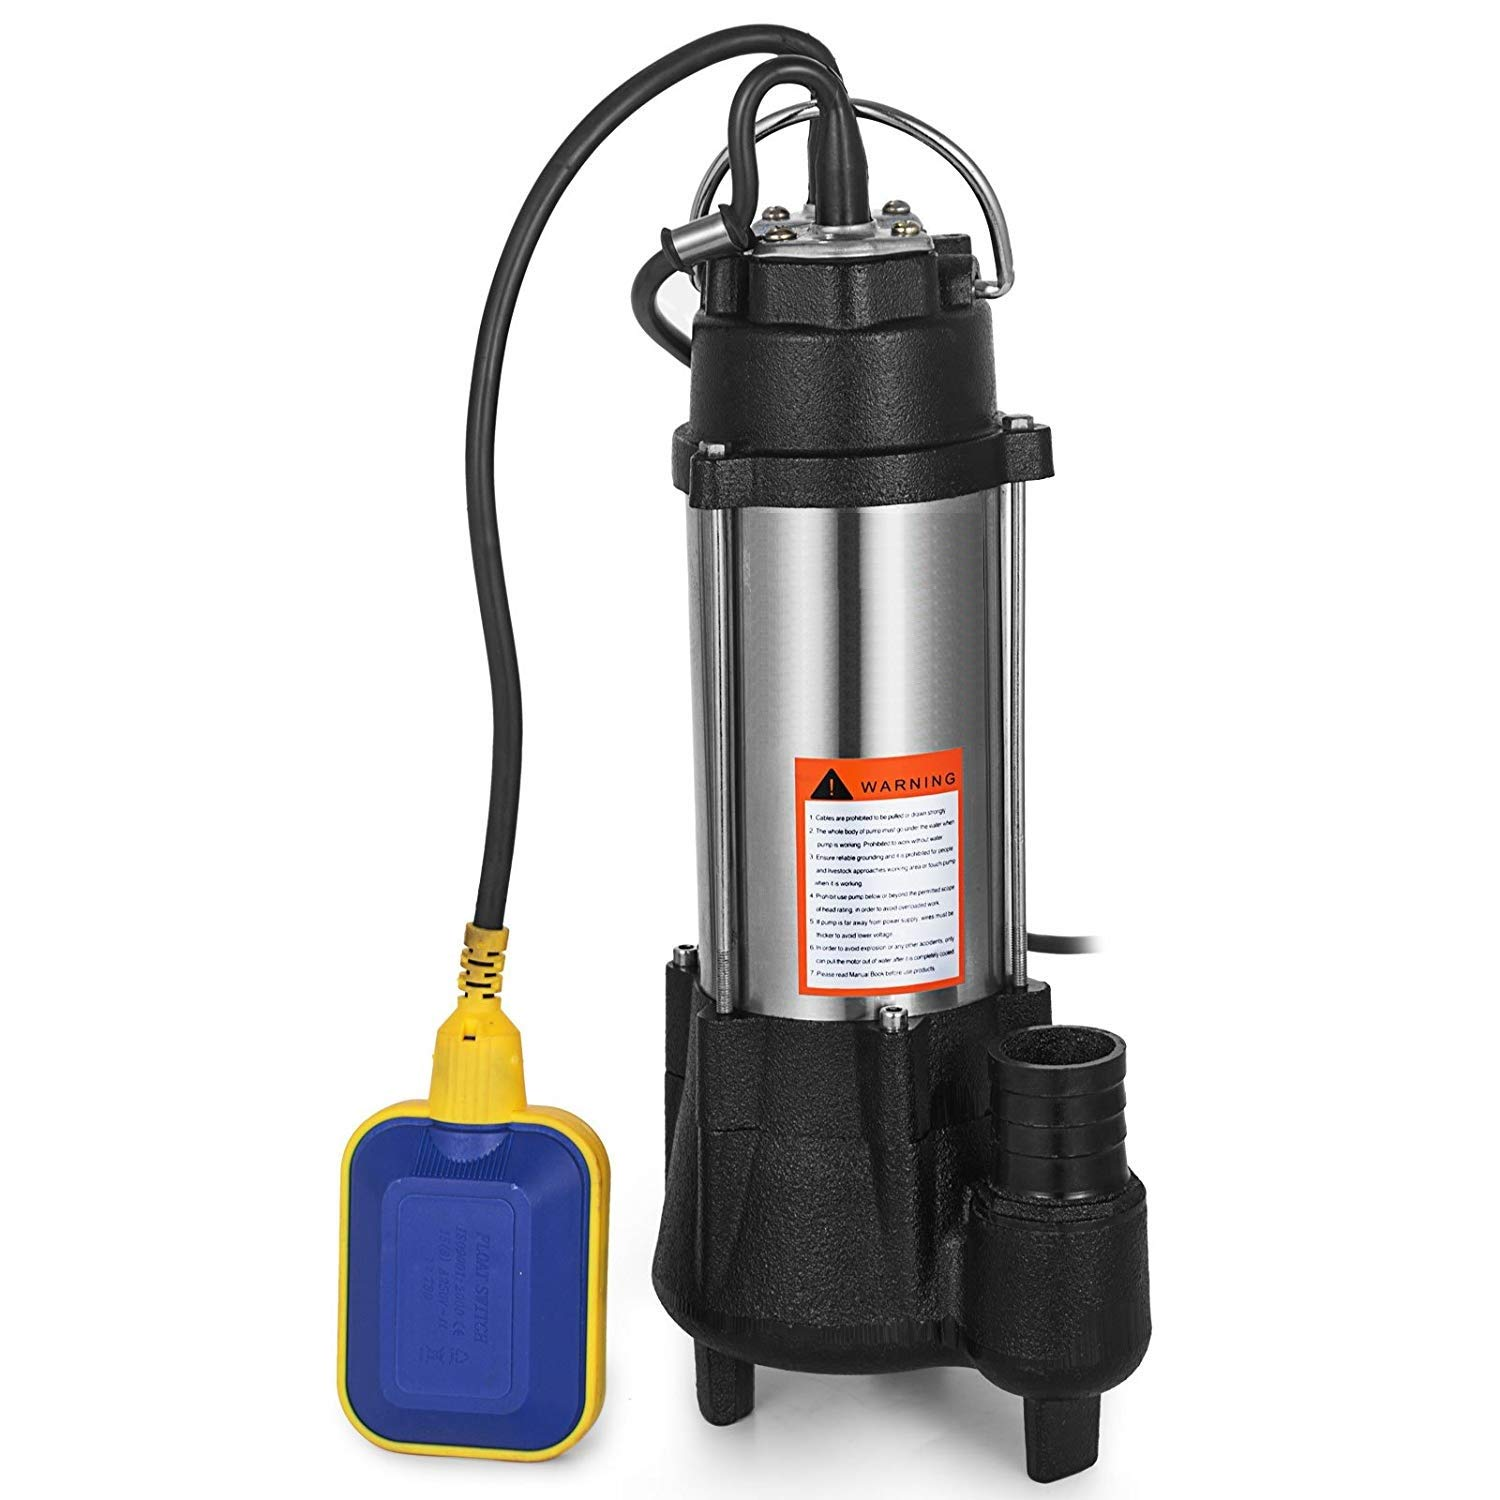 AB Submersible Heavy Duty Cast steel Sewage Pump 0.5HP Electric Removal for Clean Dirty Water Transfer With 20FT Cable & Plug